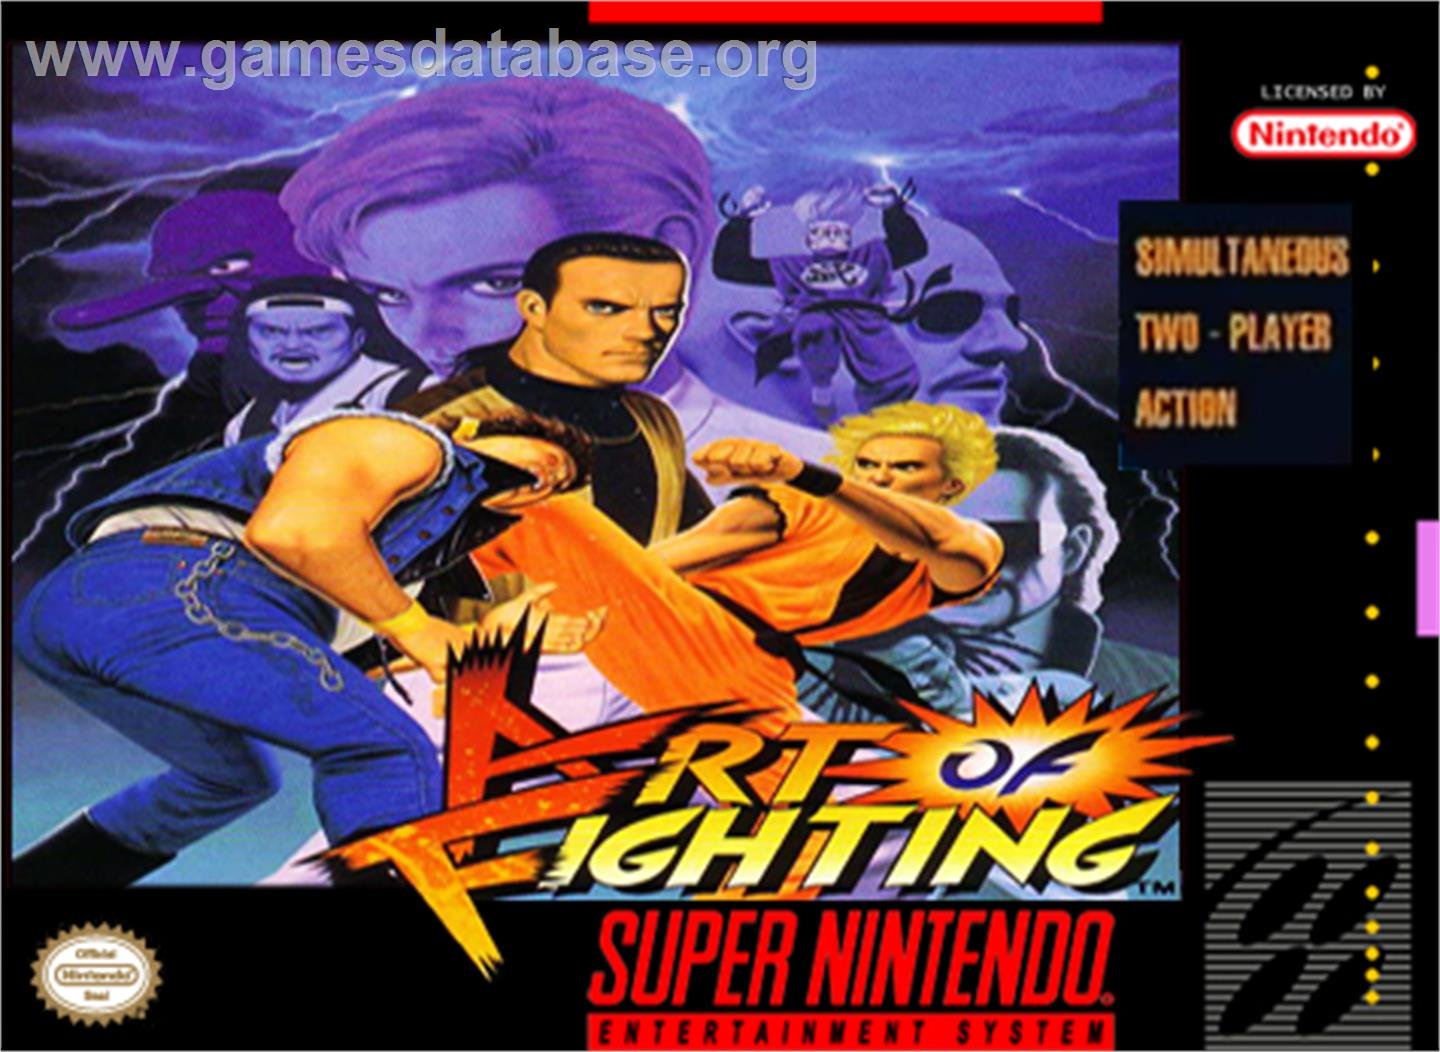 Art of Fighting - Nintendo SNES - Artwork - Box